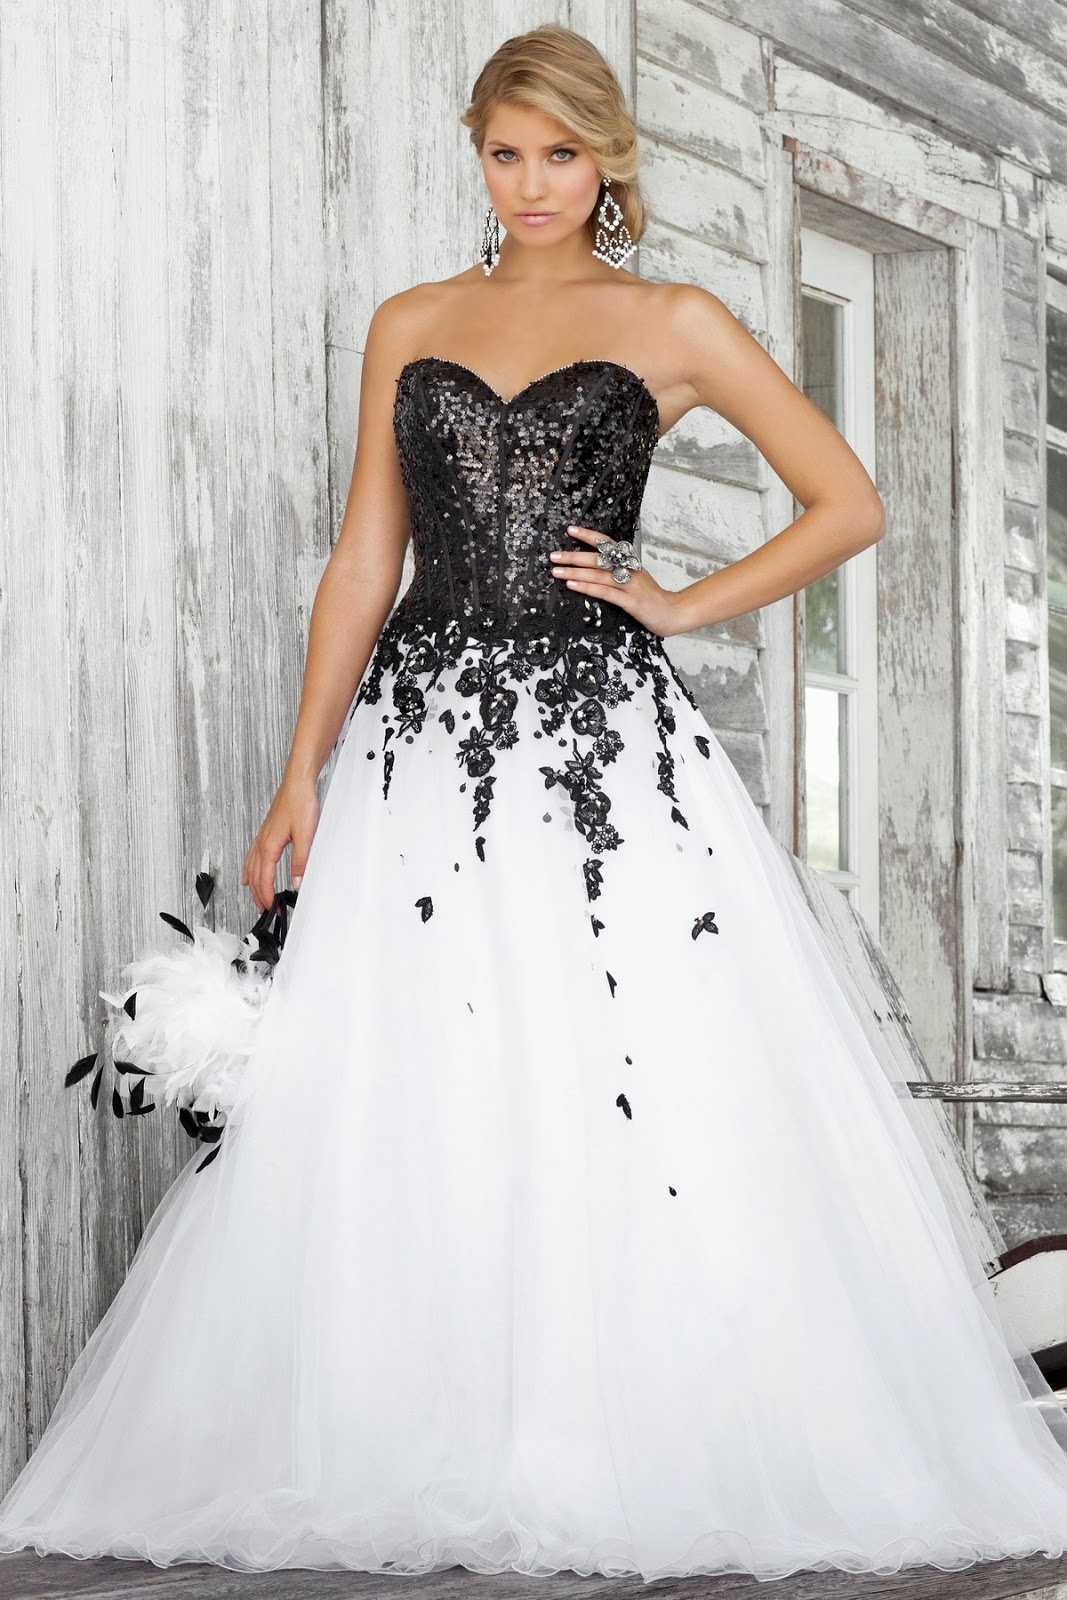 Black N White Wedding Dresses : White dress pictures black and prom dresses